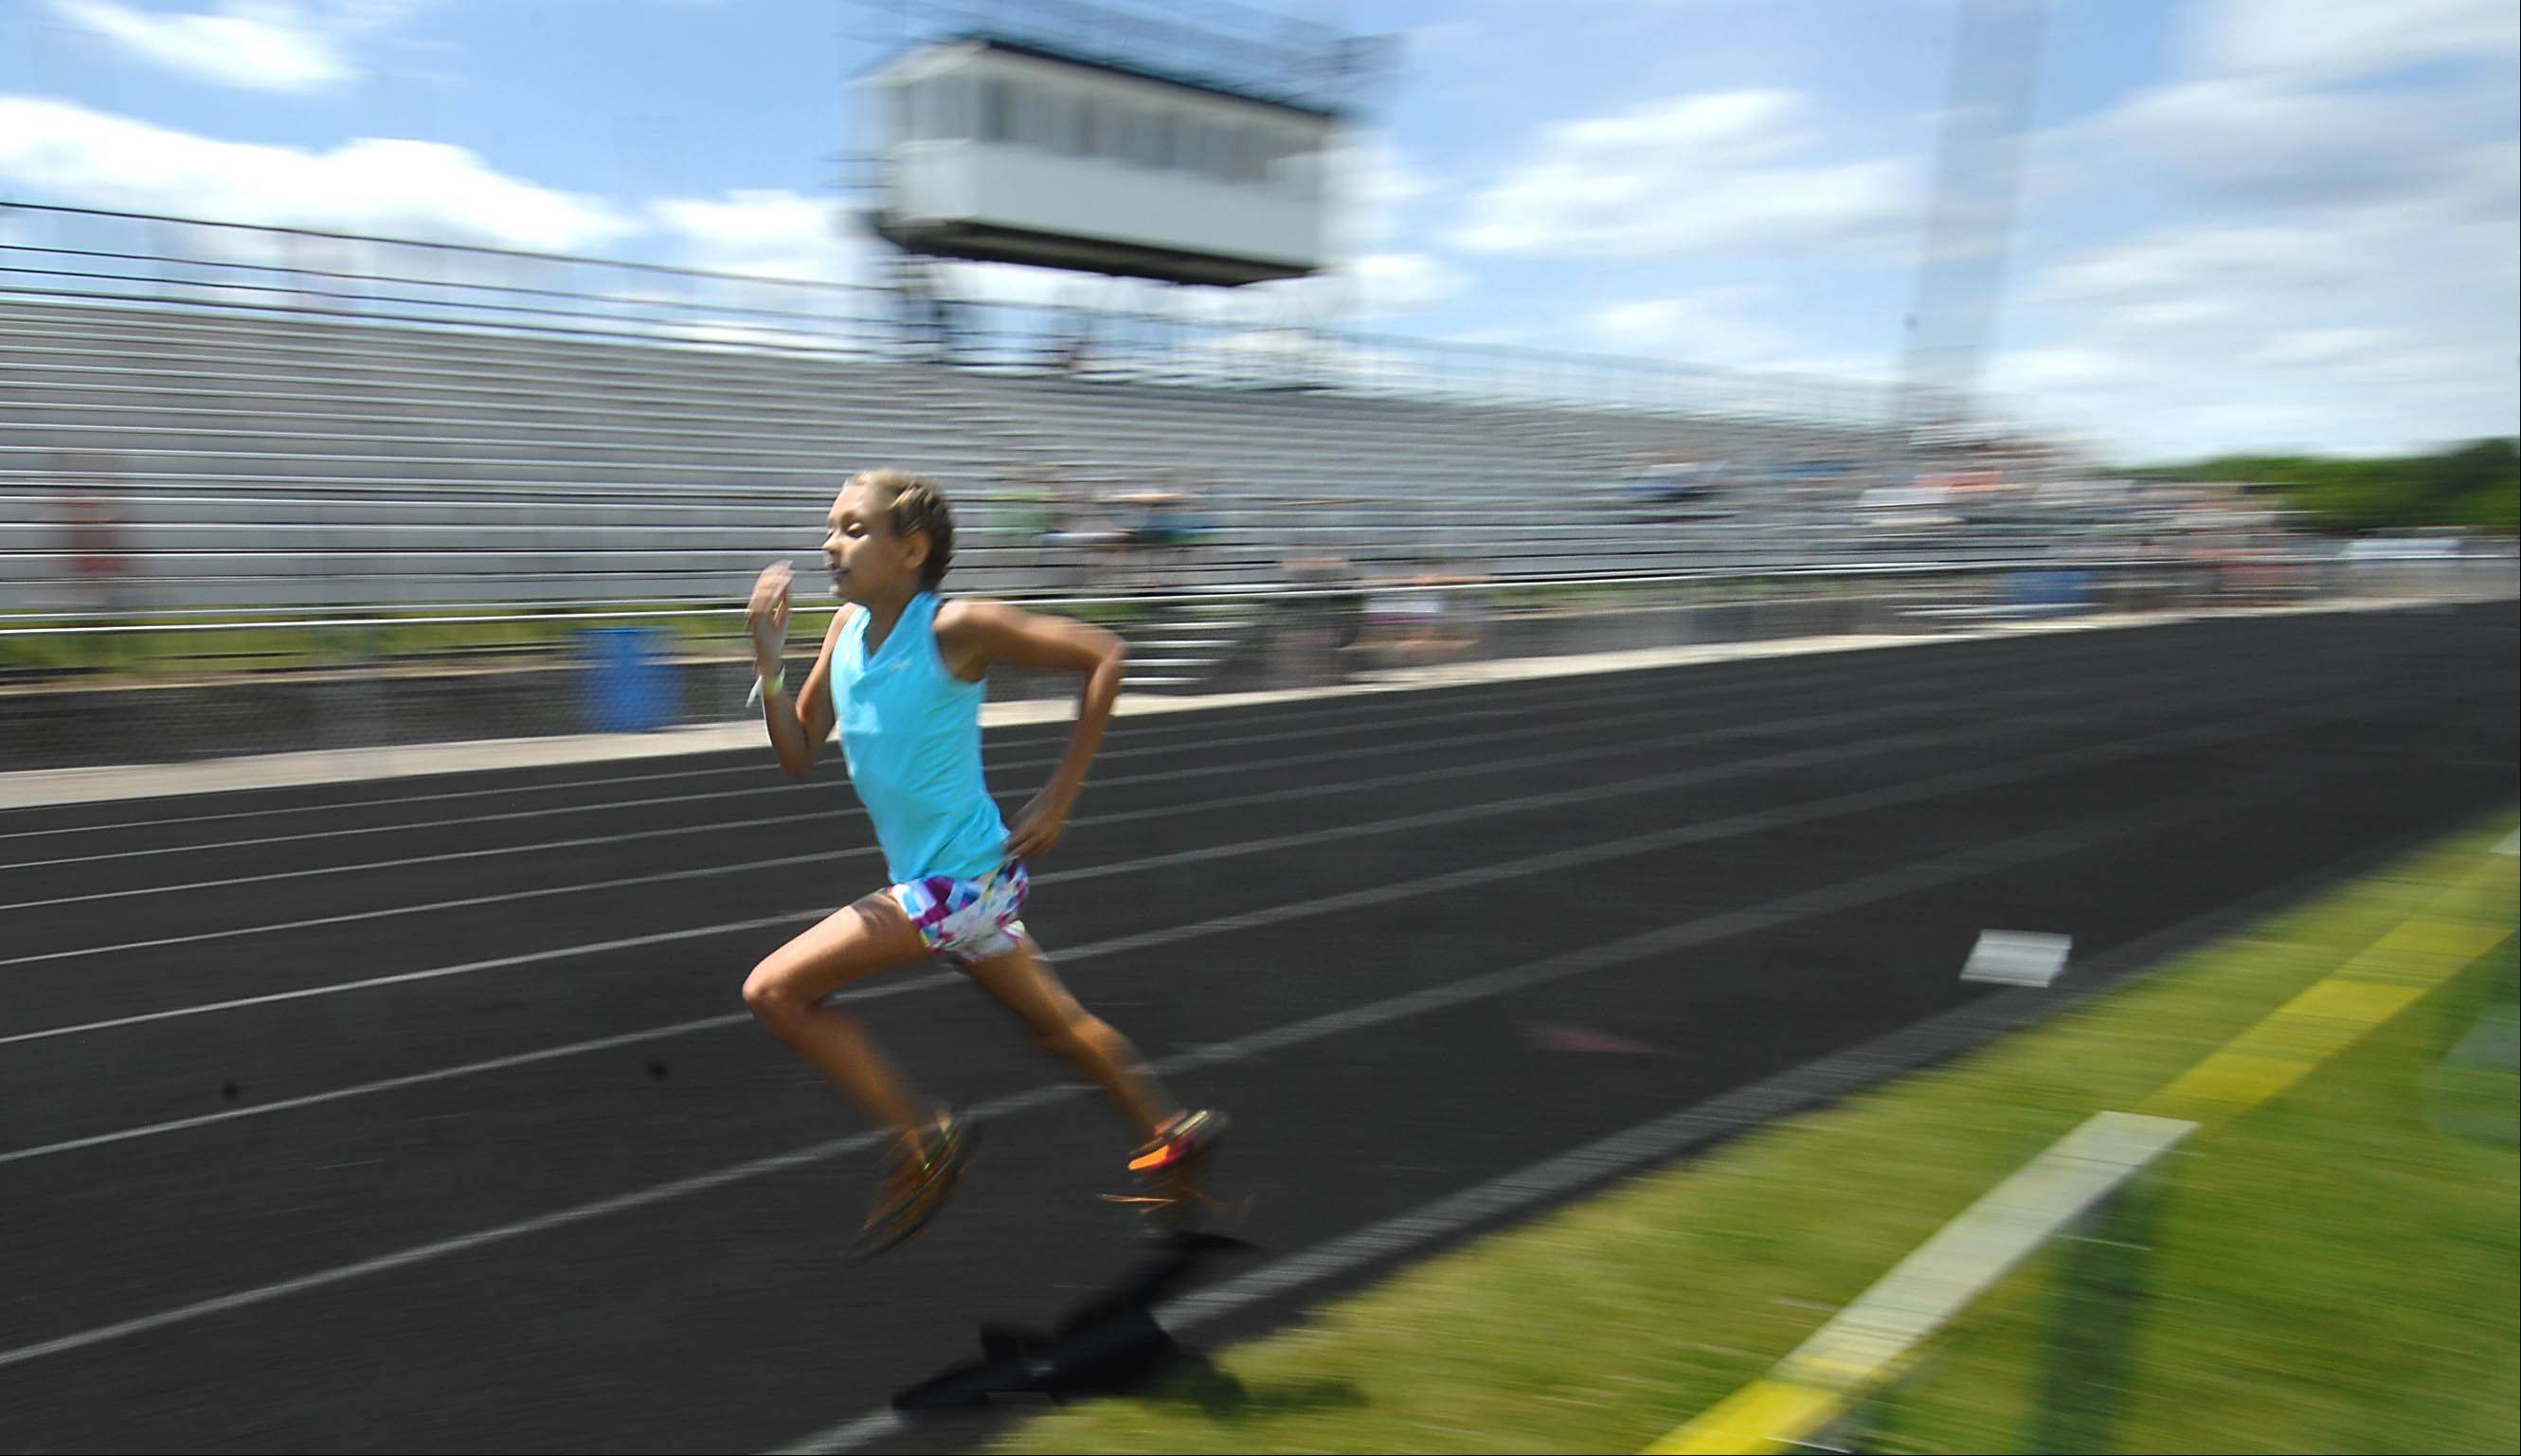 Chloe Smith, 12, of Lake in the Hills, wins the 800-meter run Sunday at the Hershey's National Track and Field Games at Cary-Grove High School. The Cary Park District ran the Hershey's-sponsored event, which was open to all 9- to 14-year-olds. Winners can advance for a shot at a national meet later this summer.